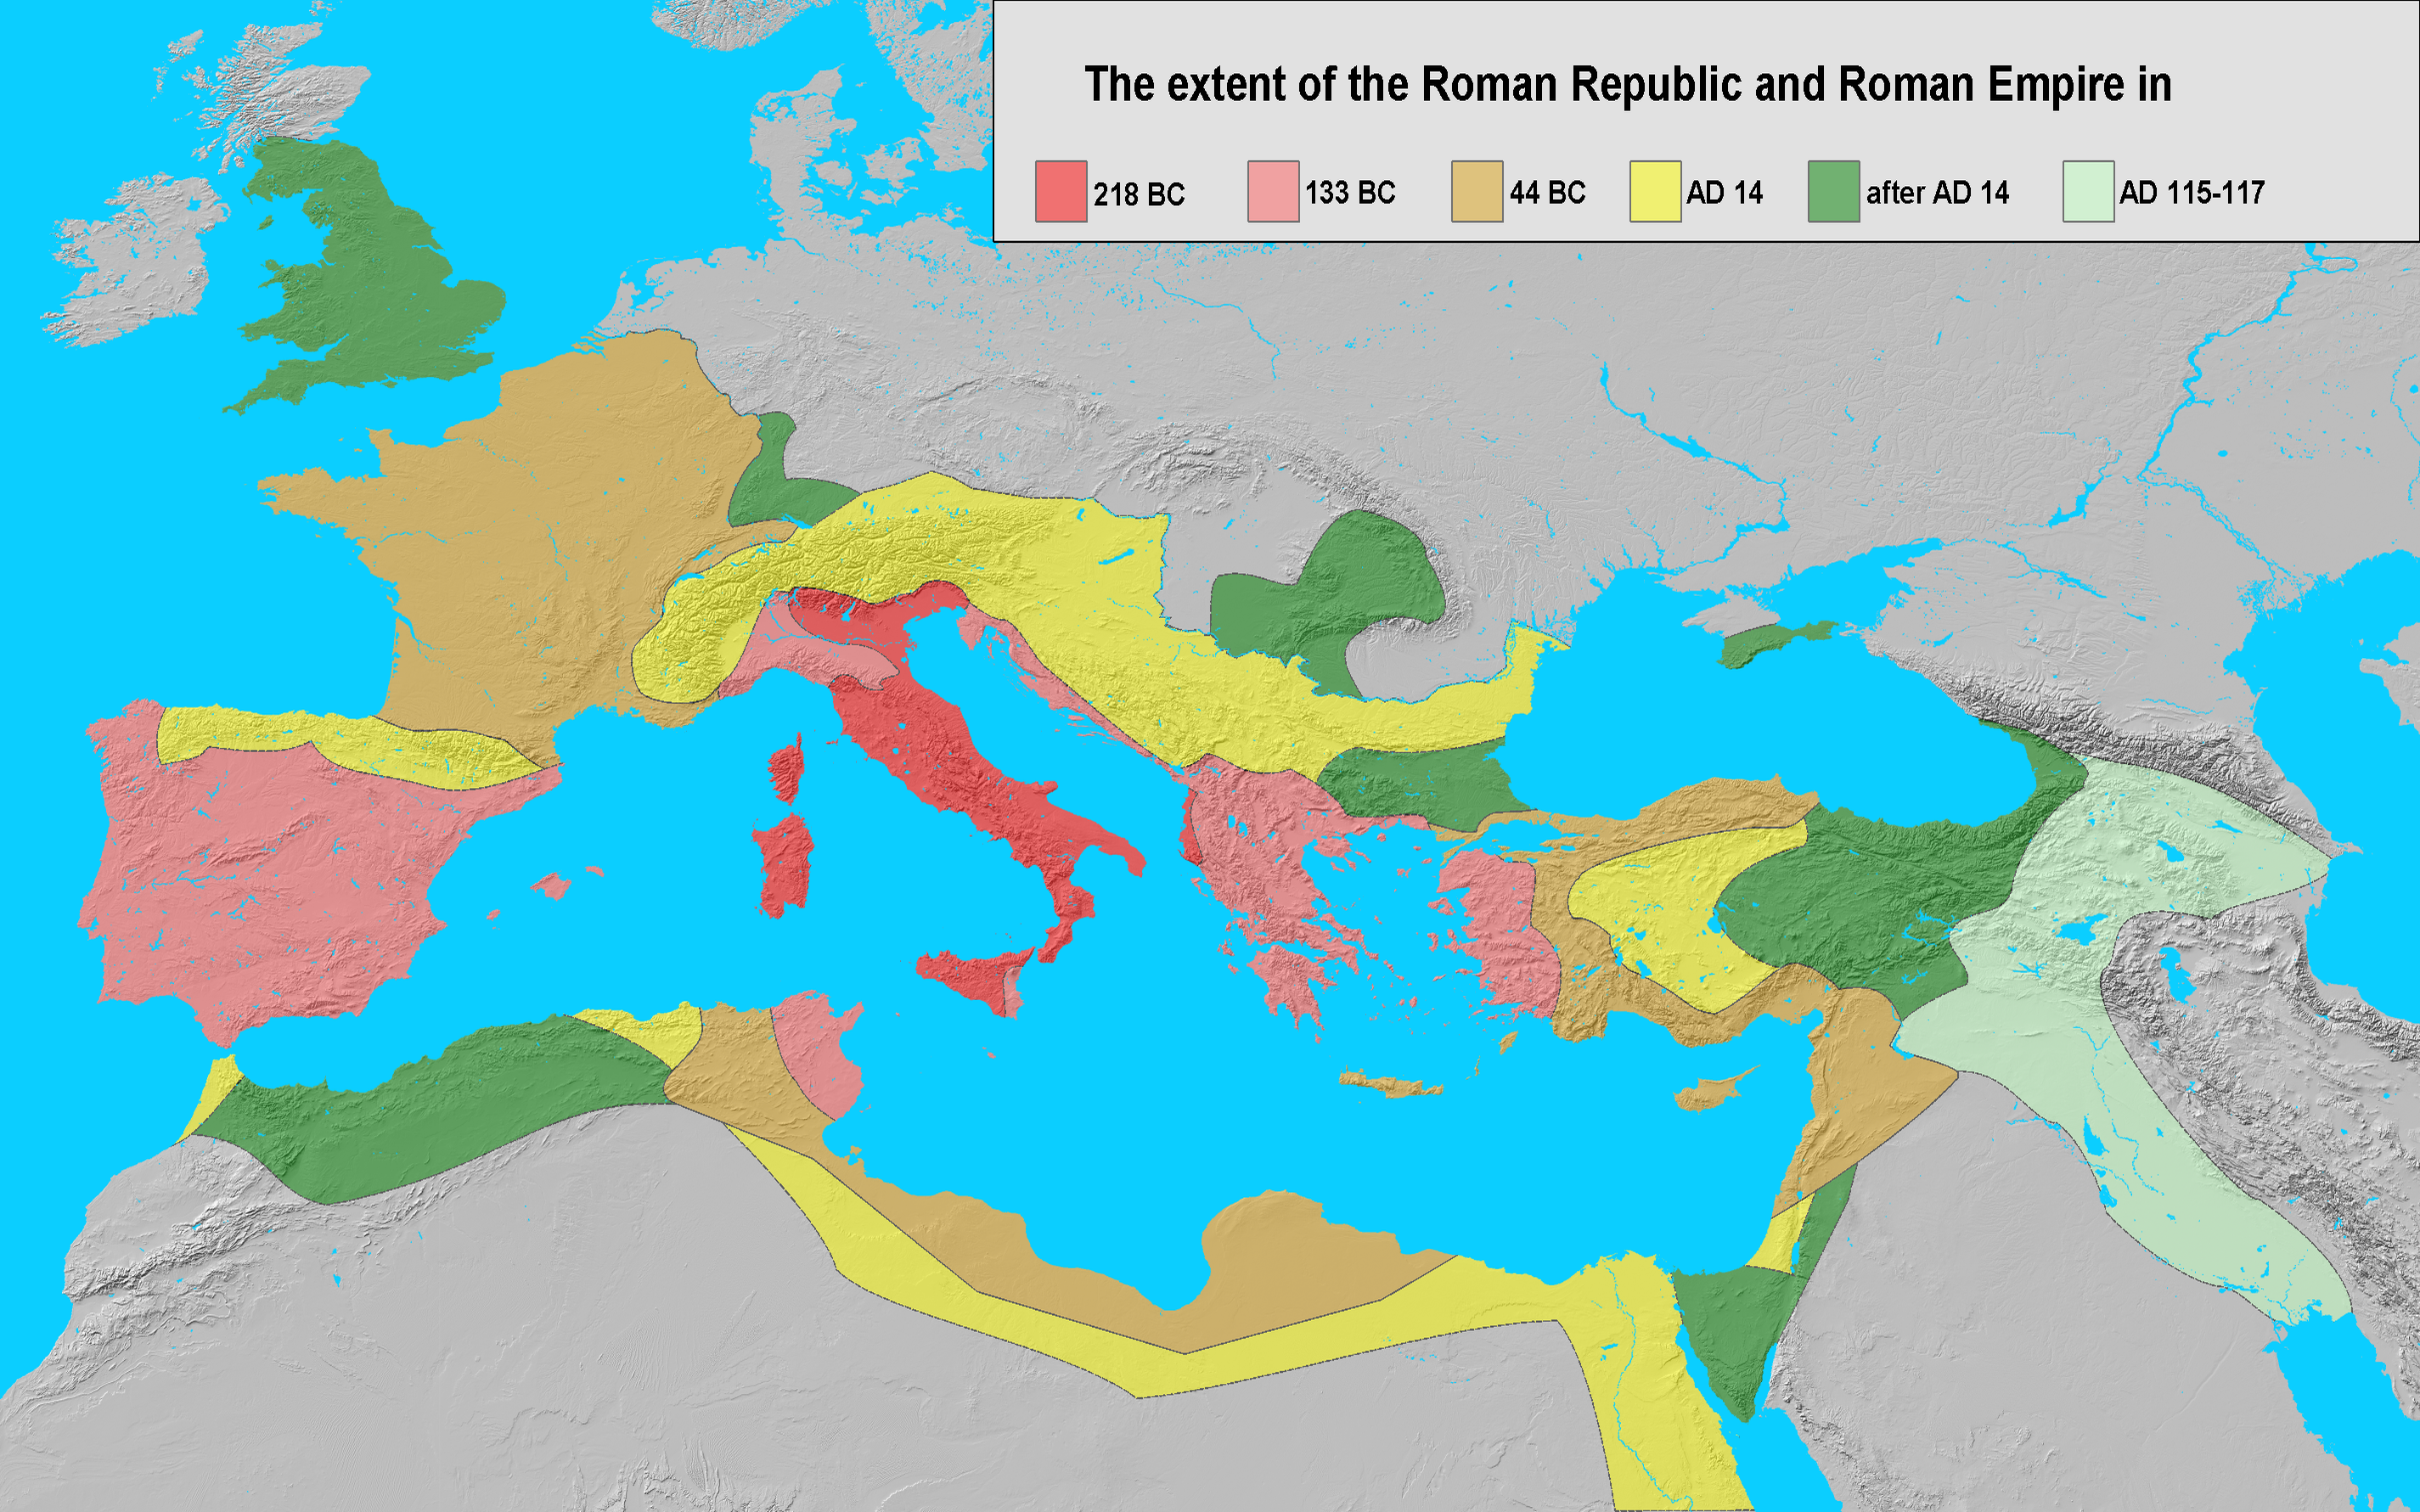 Extent of the roman empire in 218 bc dark red 133 bc light red